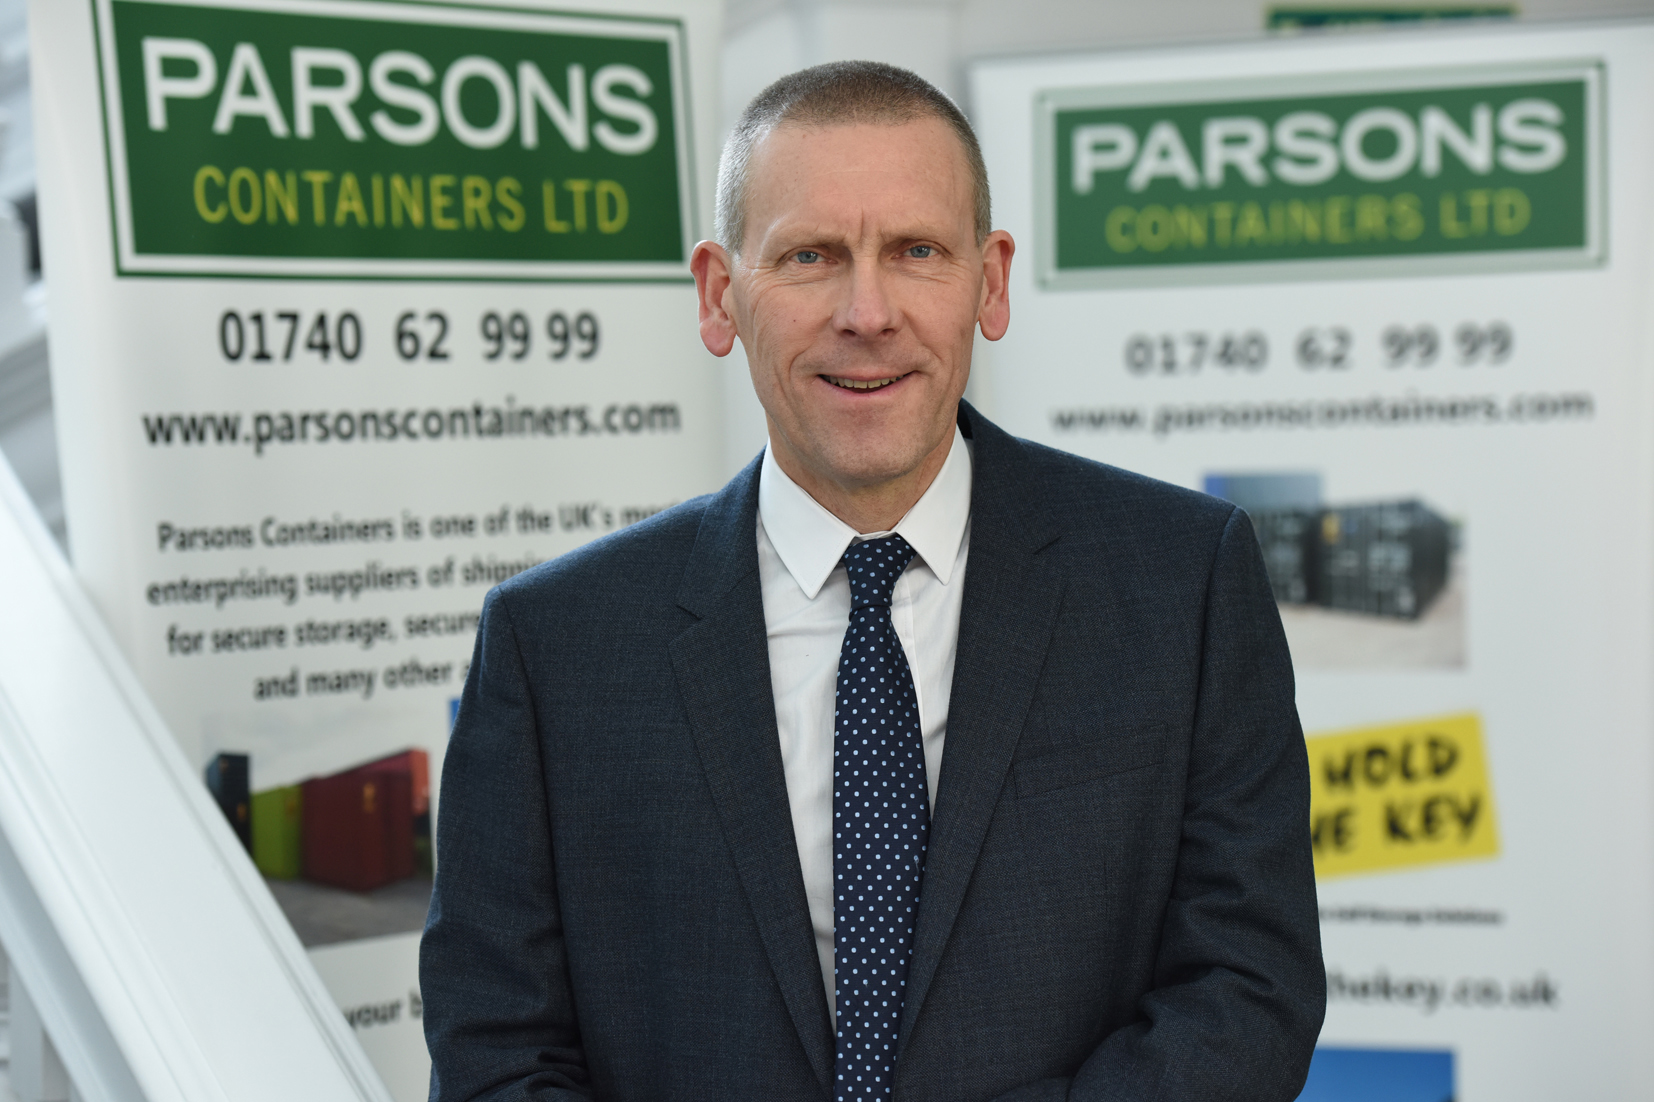 Ean Parsons, managing director of the Parsons Containers Group